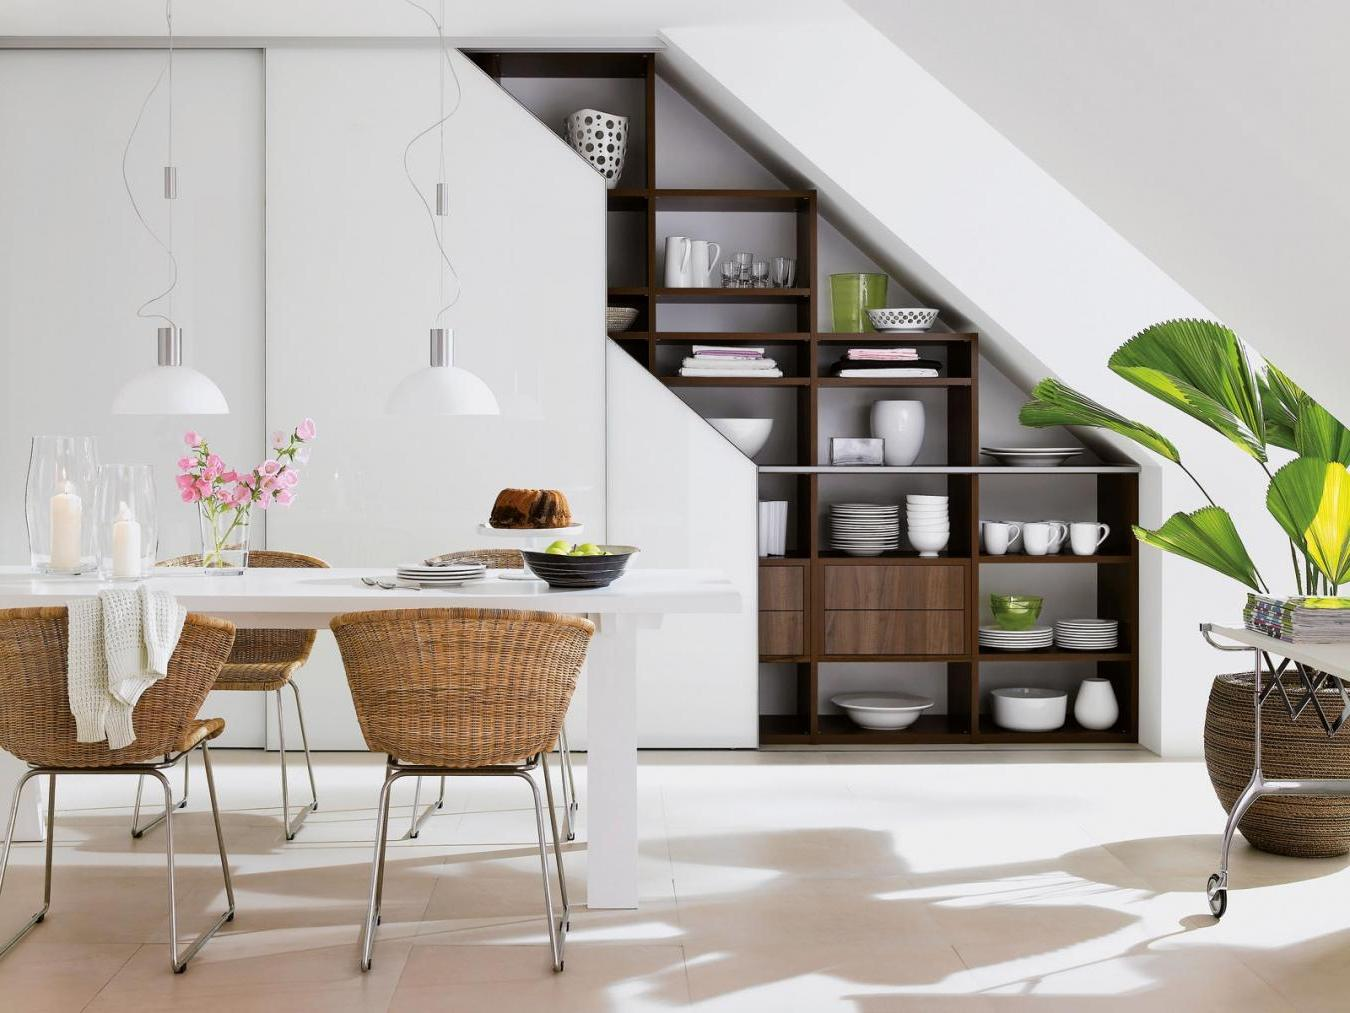 Nice-wooden-shelving-for-dining-set-under-the-staircase-along-with-a-delicate-dining-space-with-white-table-and-rattan-chairs